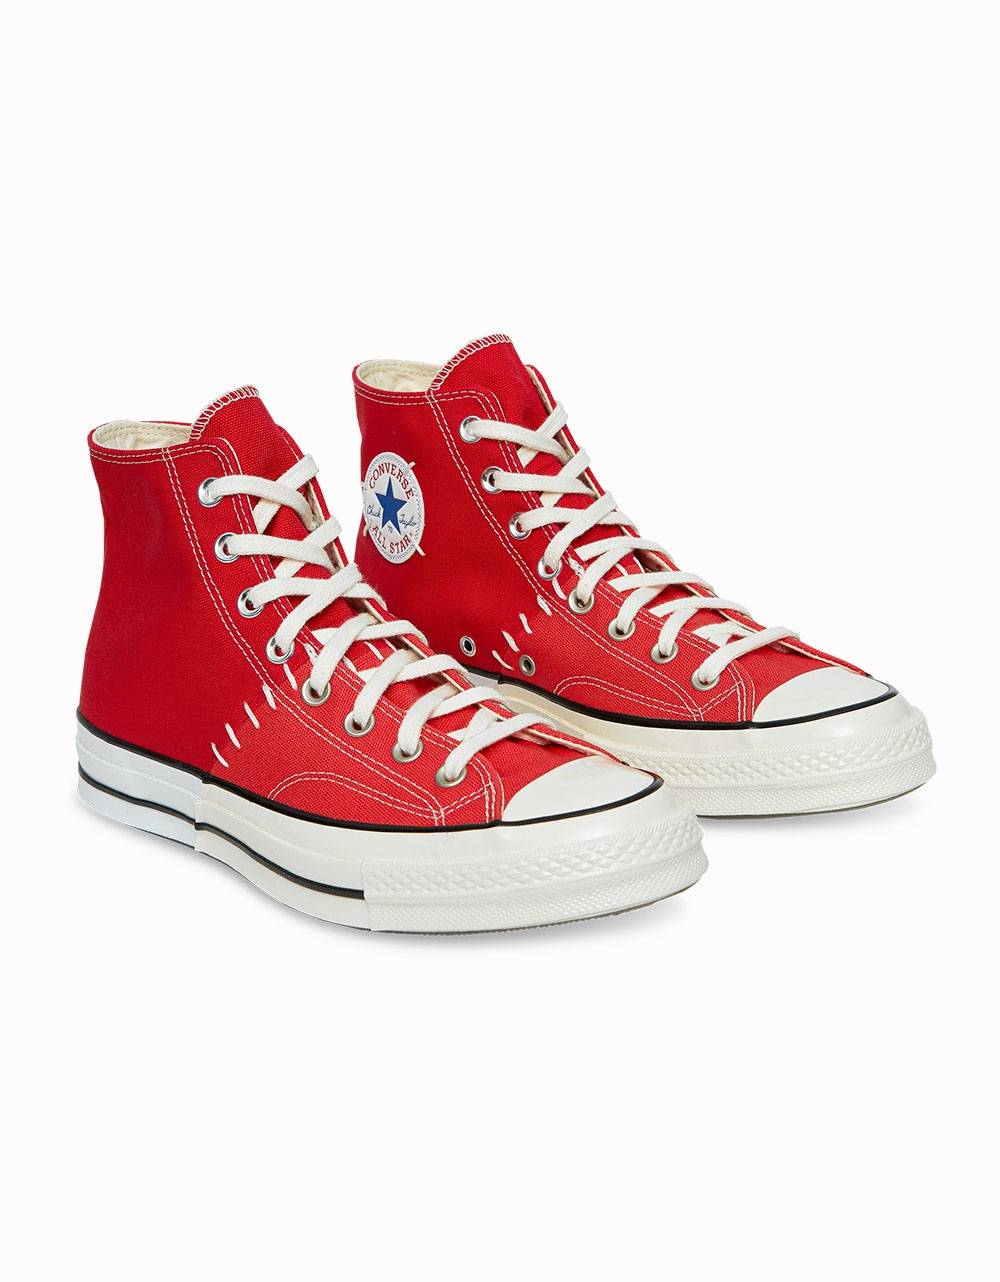 Converse Chuck Taylor 70 Recostructed High ltd - Red/sedona red/egret Converse Sneakers 116,39 €